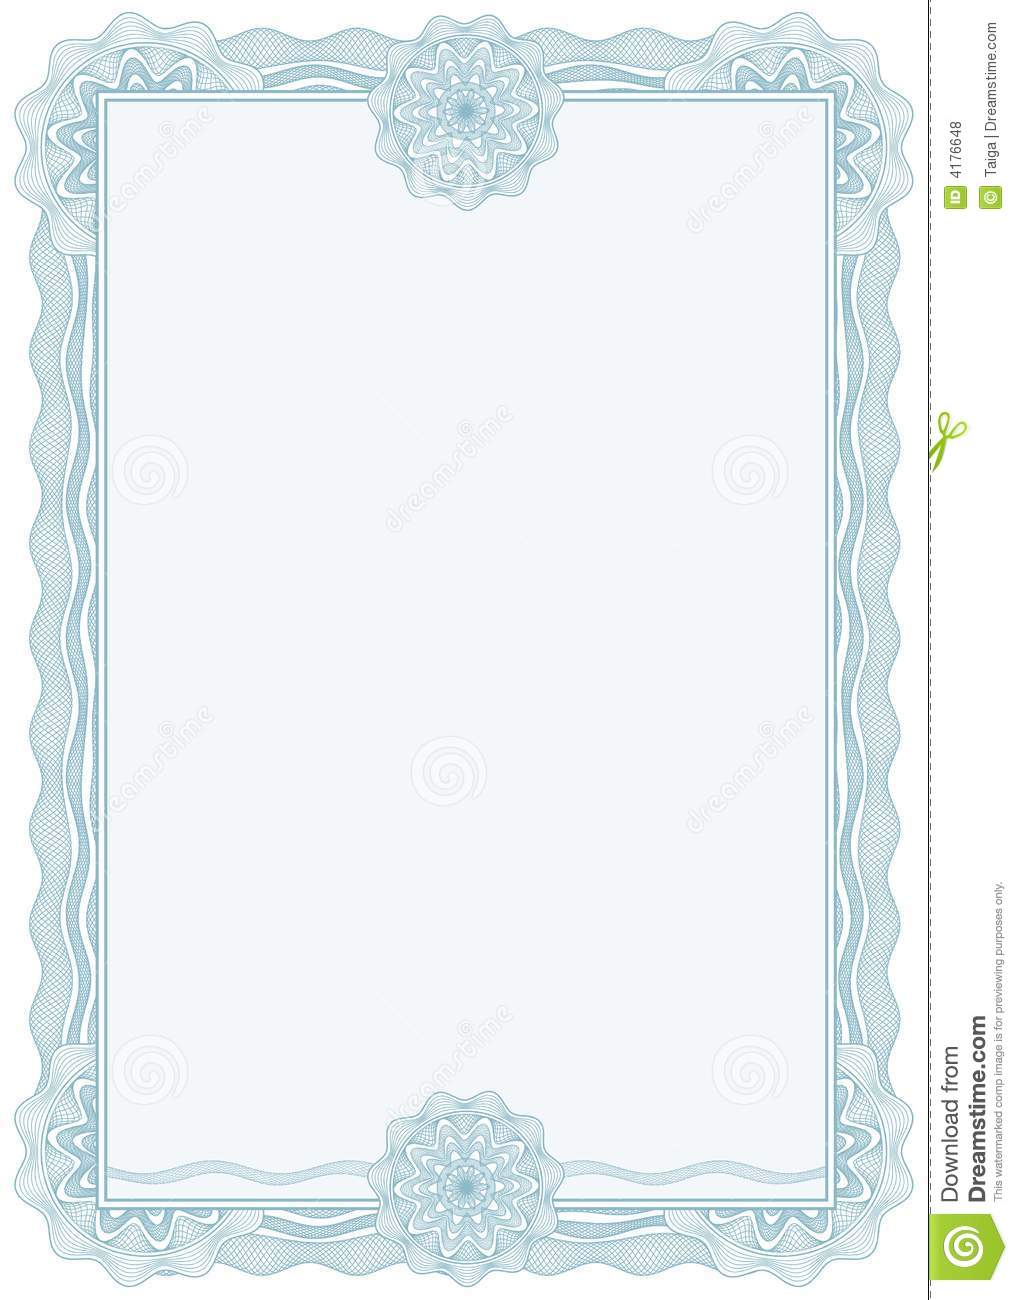 Diploma Or Certificate / Border / A4 / Vector  Certificate Borders Free Download